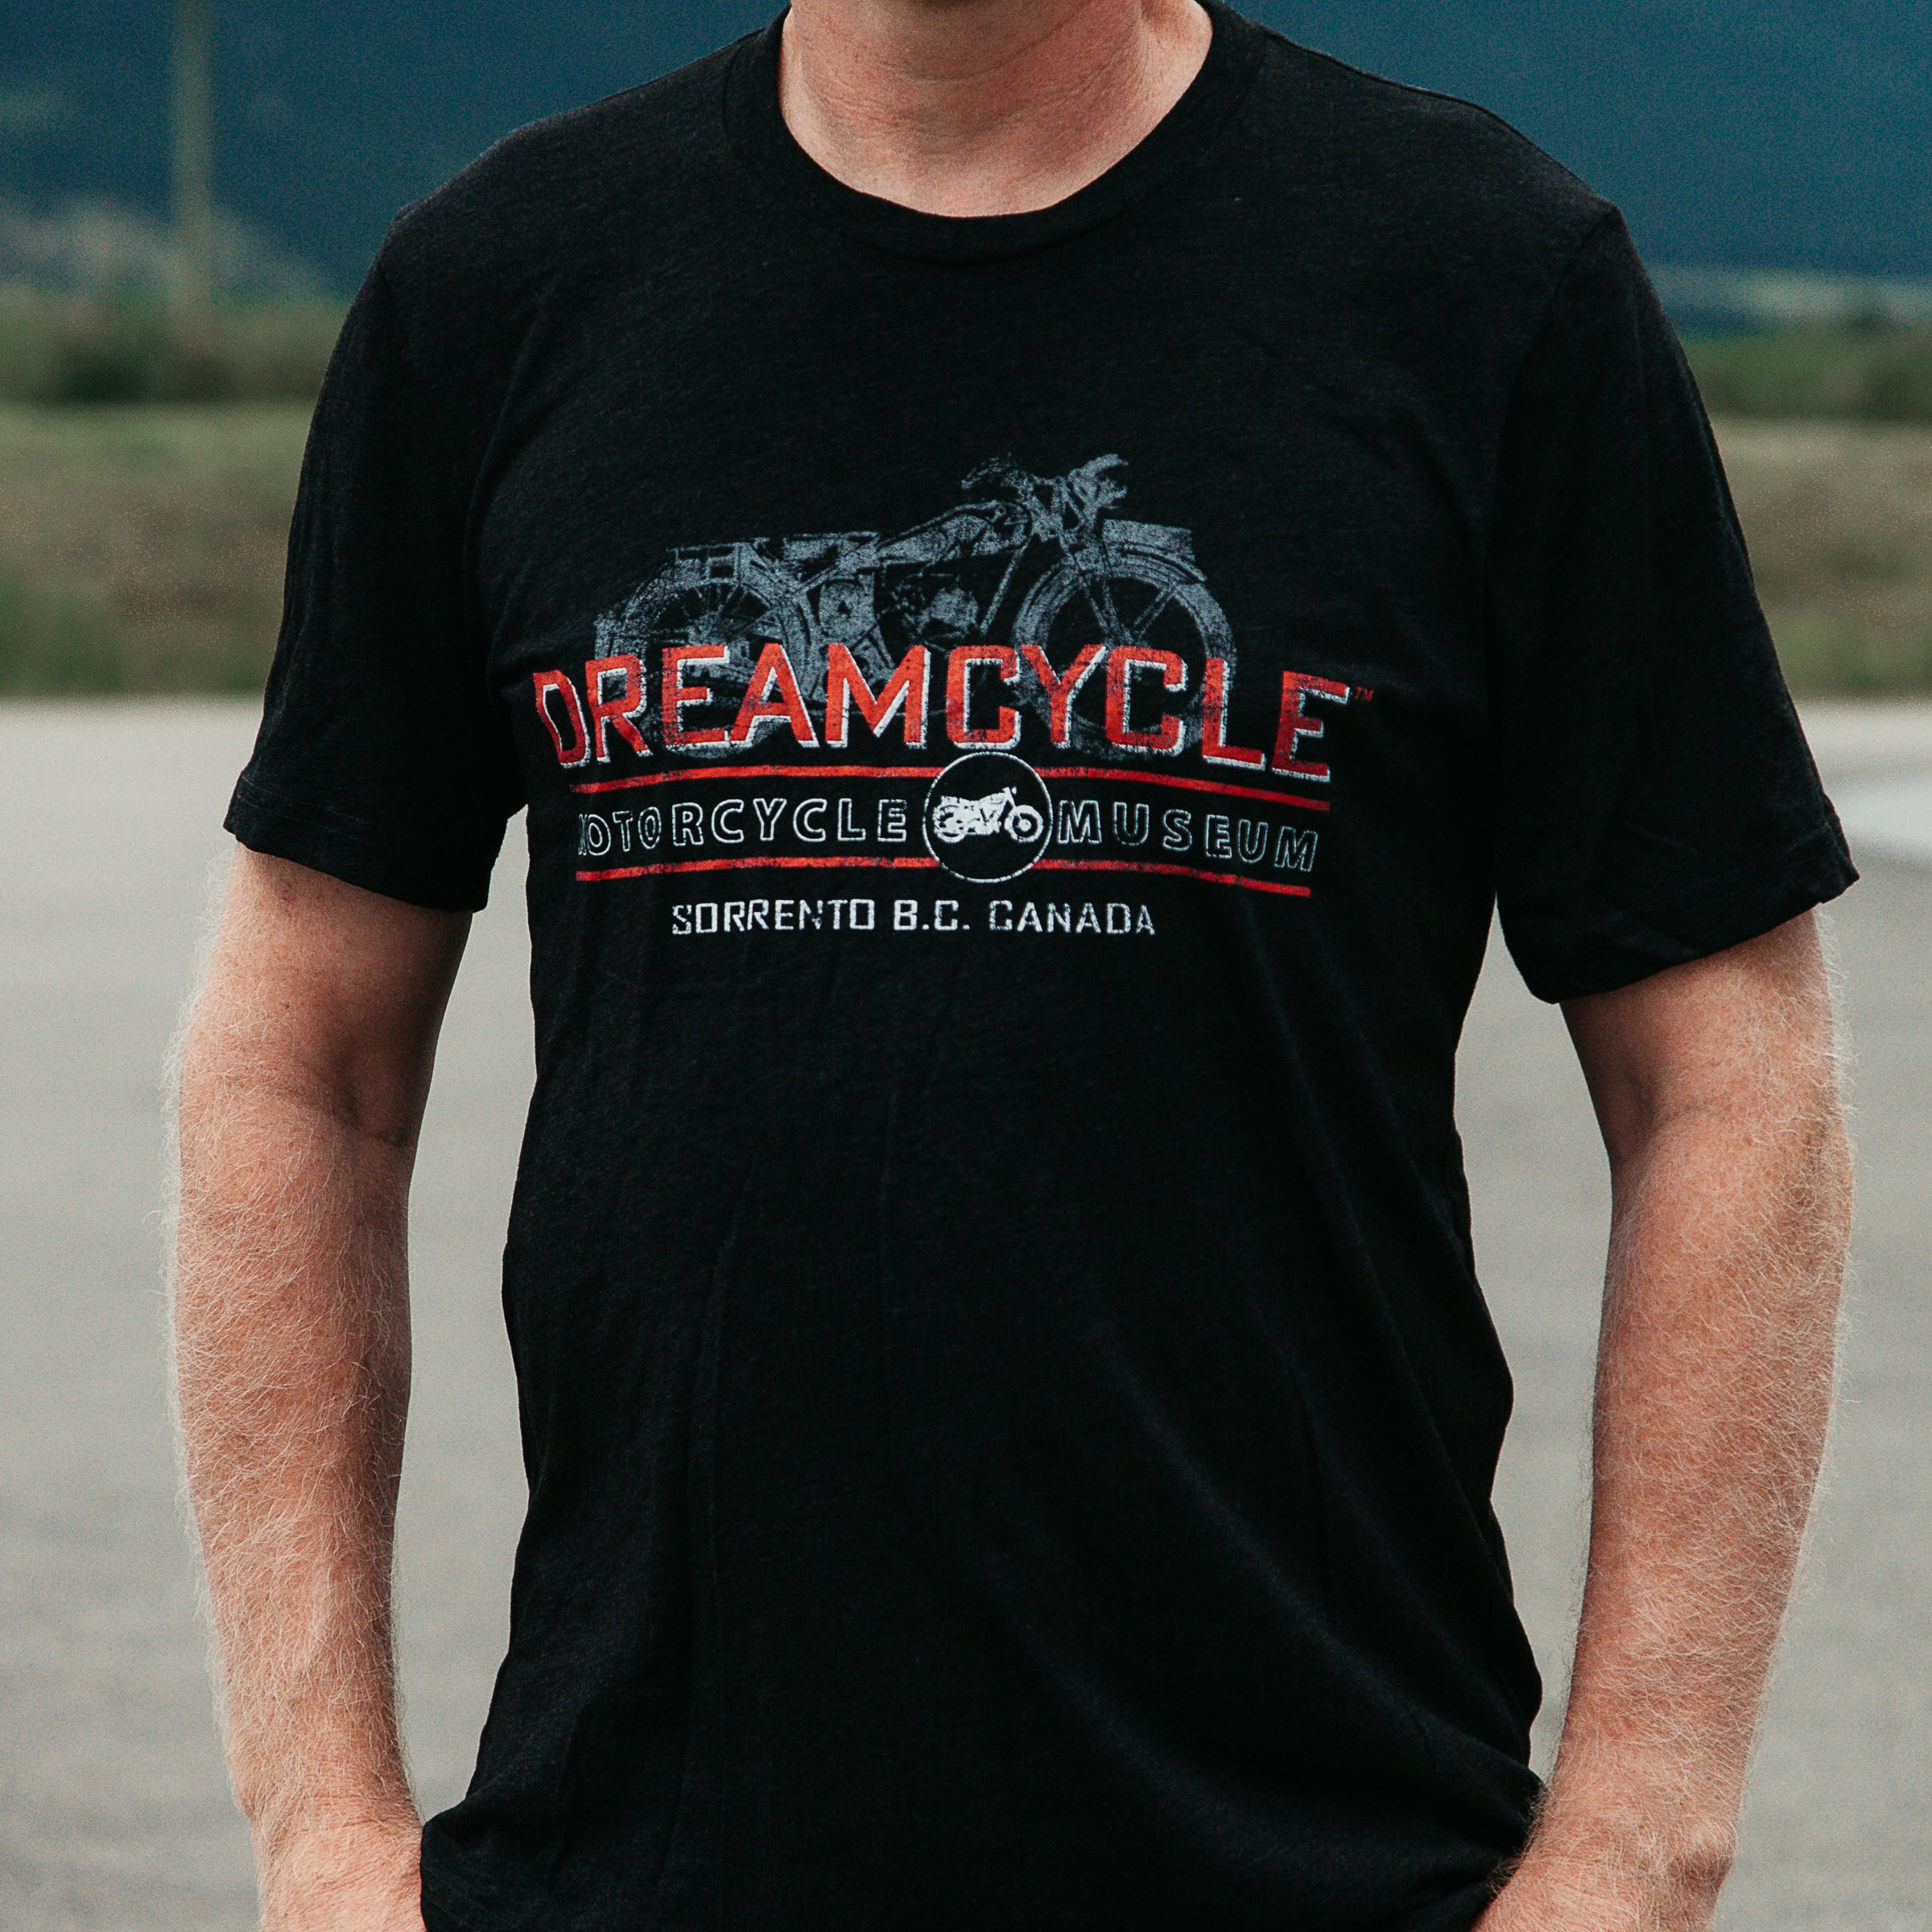 Dreamcycle Motorcycle Museum | Closeup man modeling dreamcycle tshirt with motorcycle.